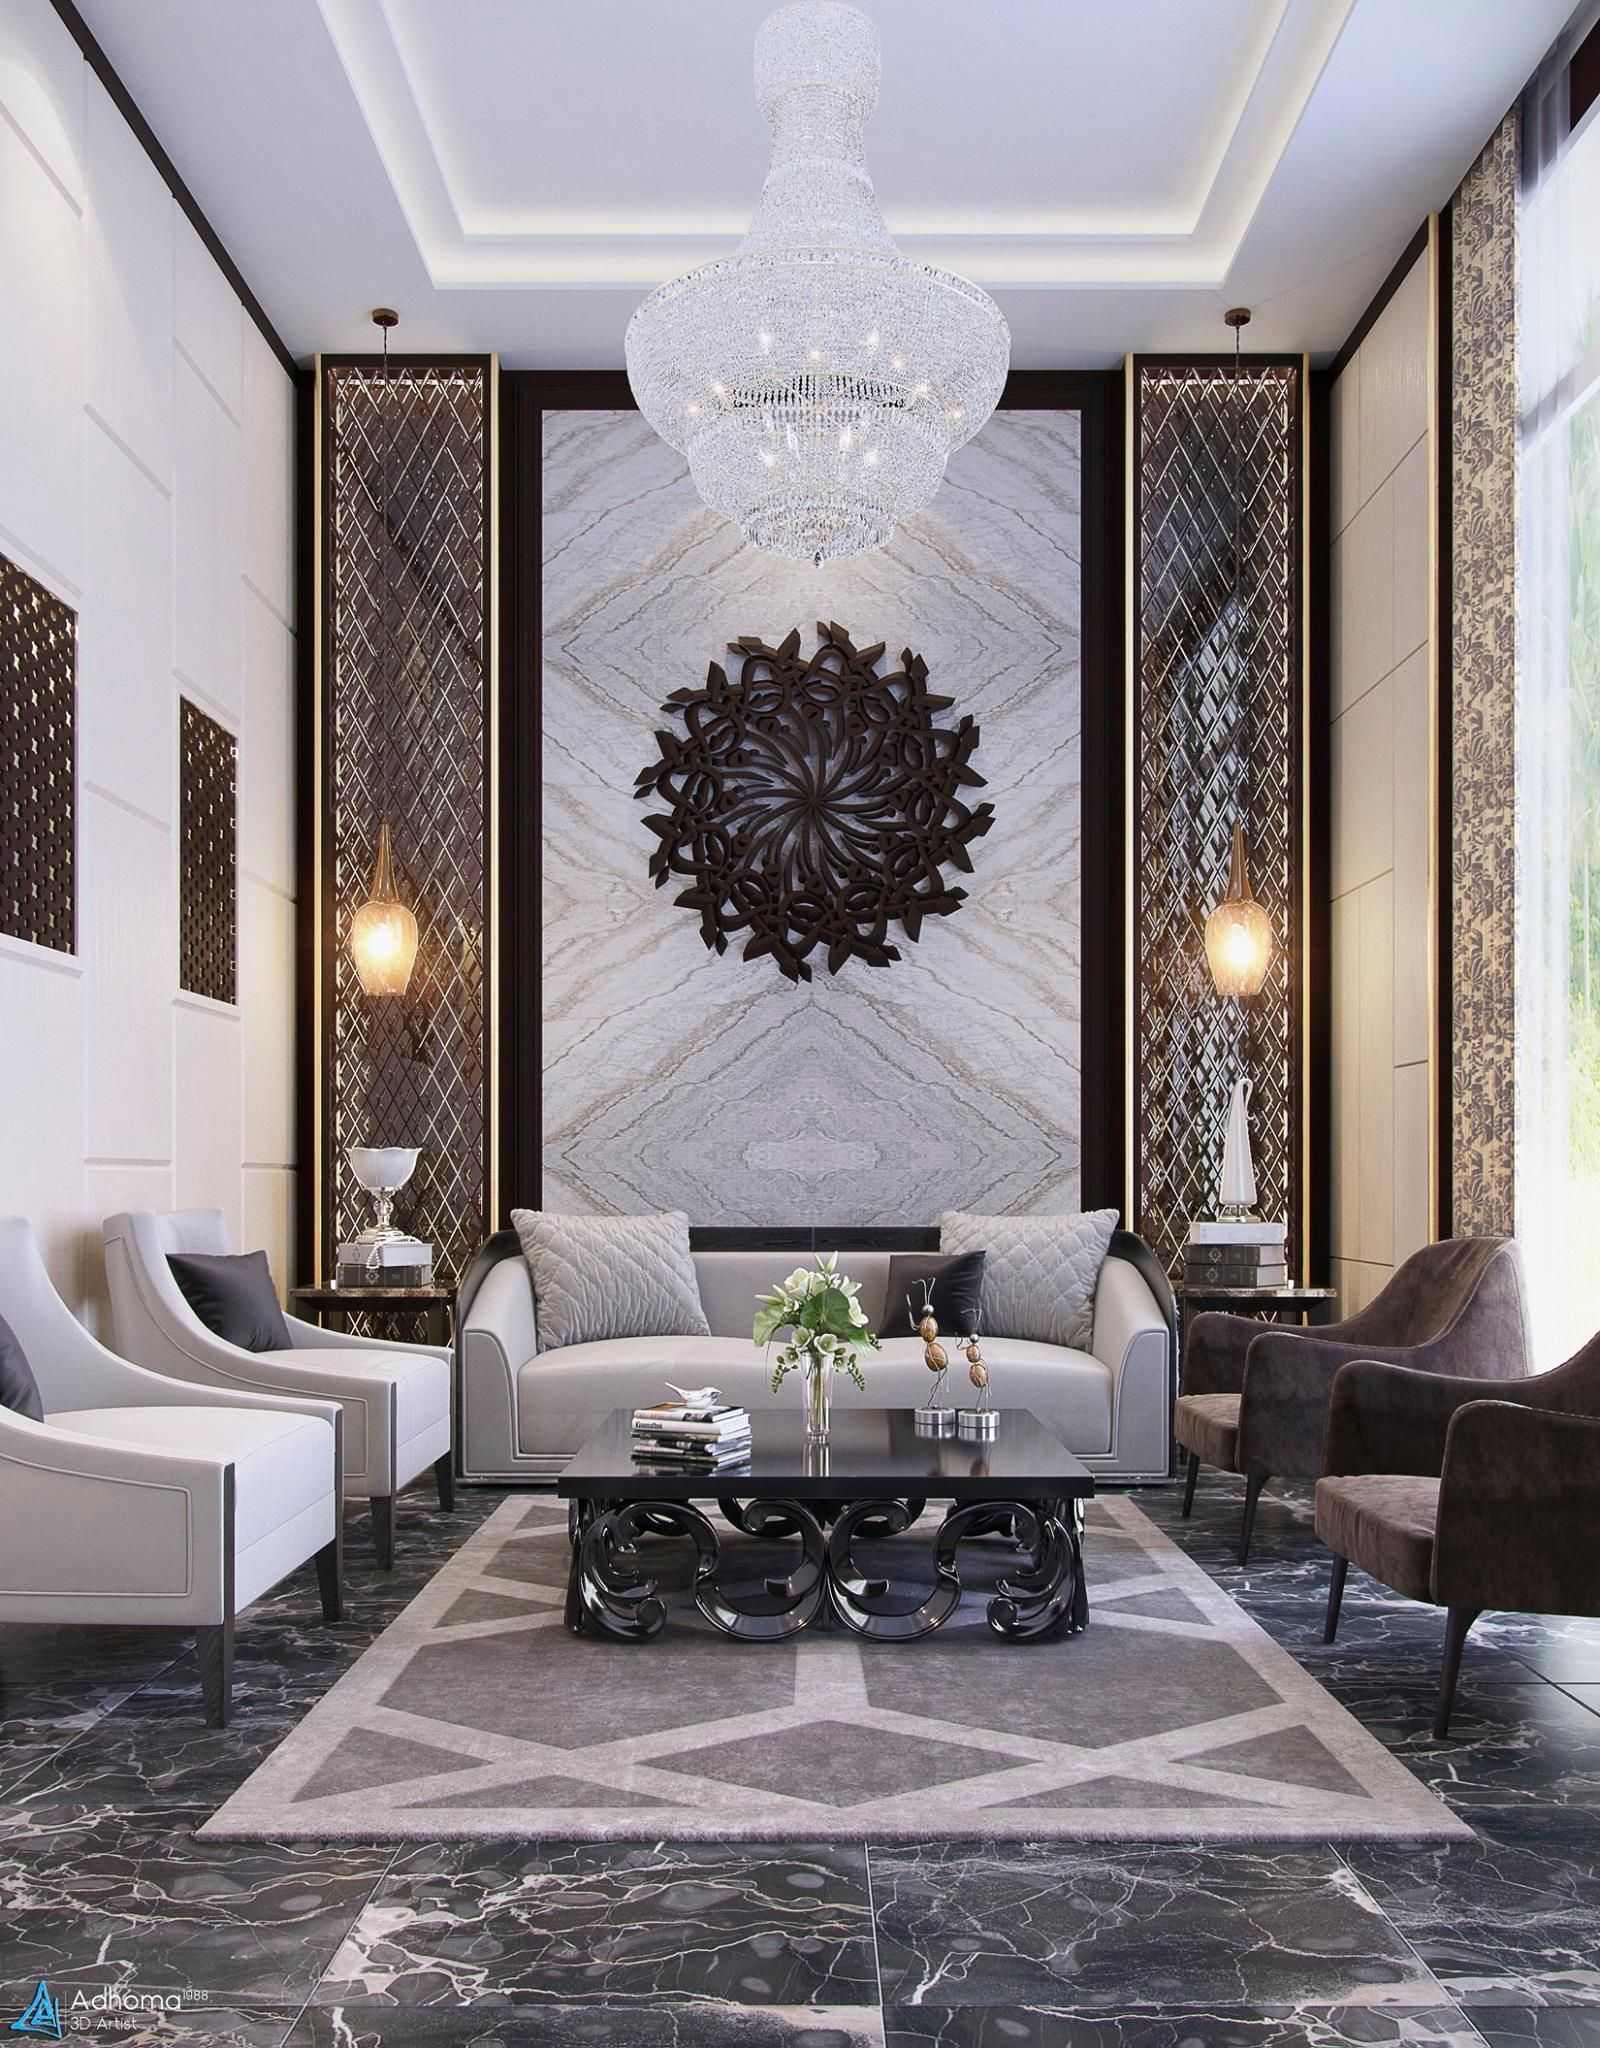 Pictures Of Interior Design Living Rooms: The Latest Luxurious Trends For Your Home Decoration